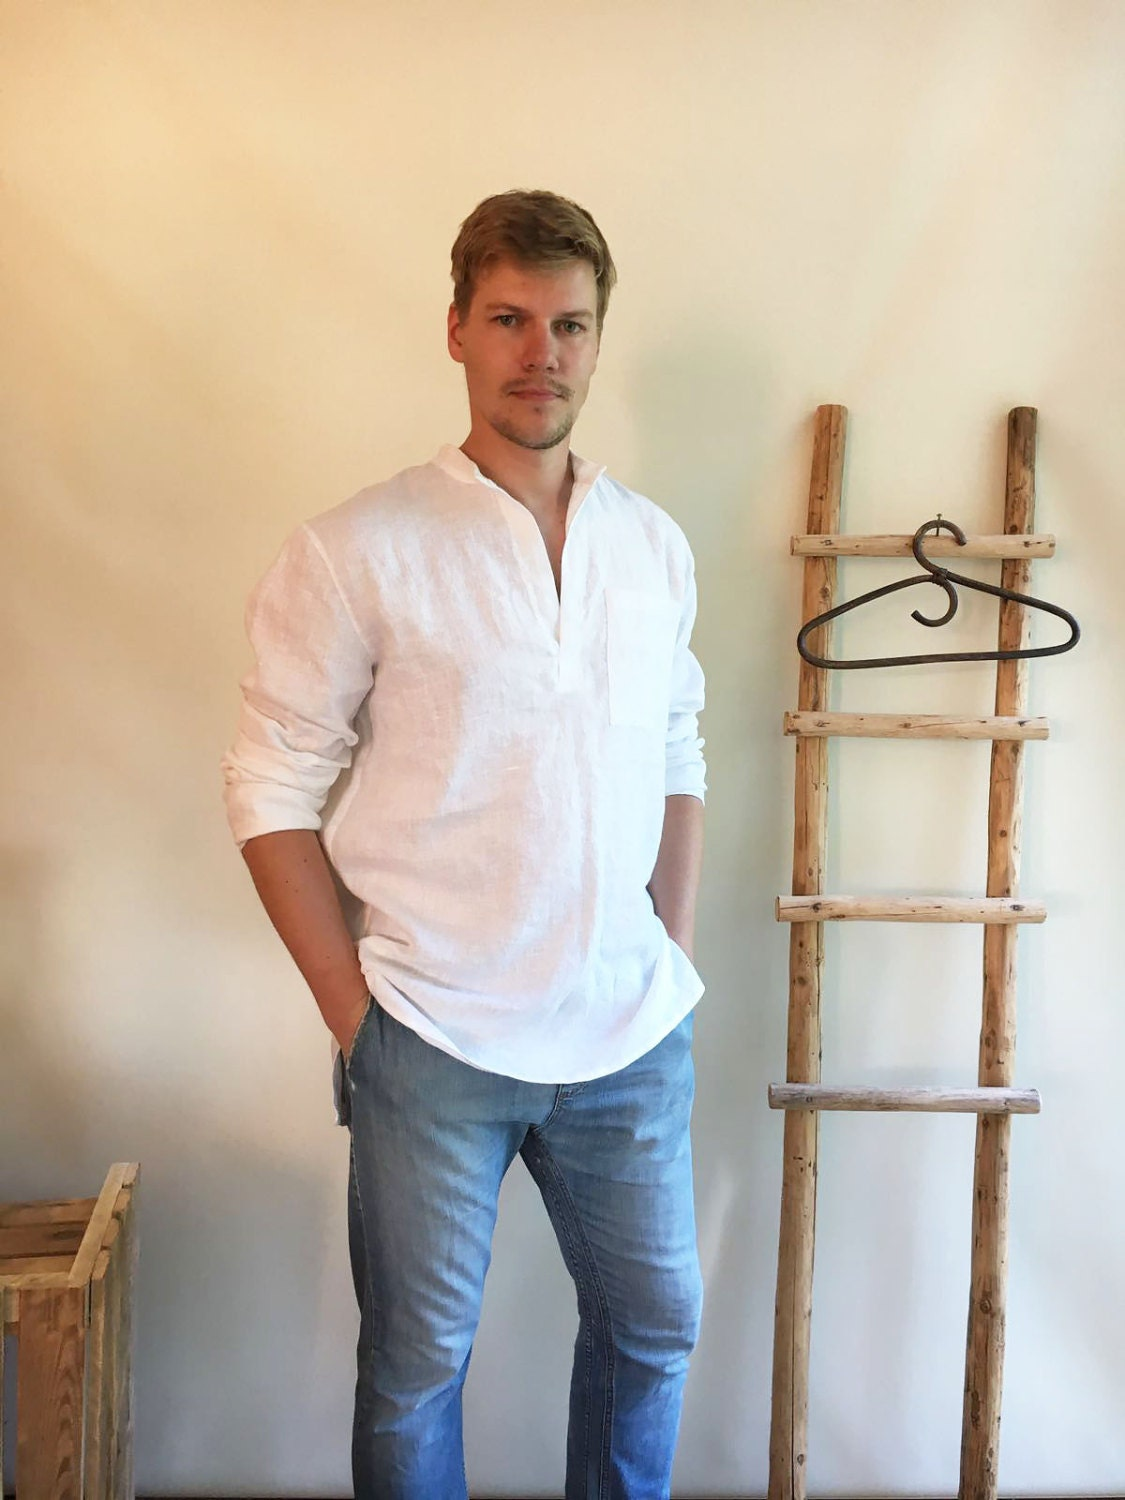 Linen Shirt Men, Mens Shirt, White Linen Shirt Dress, Long Sleeve ...